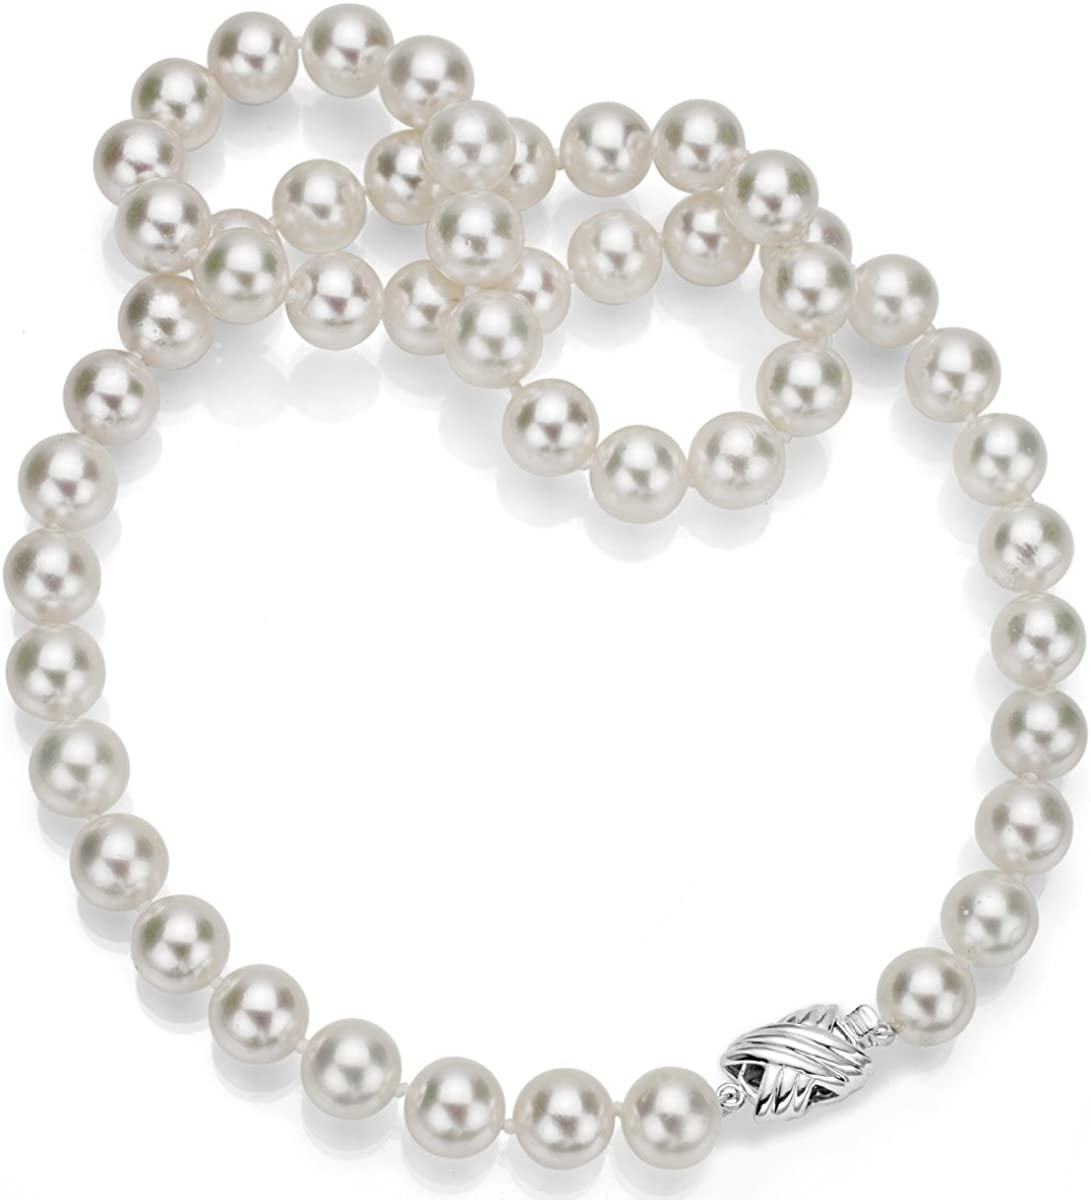 14k White Gold 12-12.5mm White Freshwater Cultured High Luster Pearl Double-sided Clasp Necklace 18